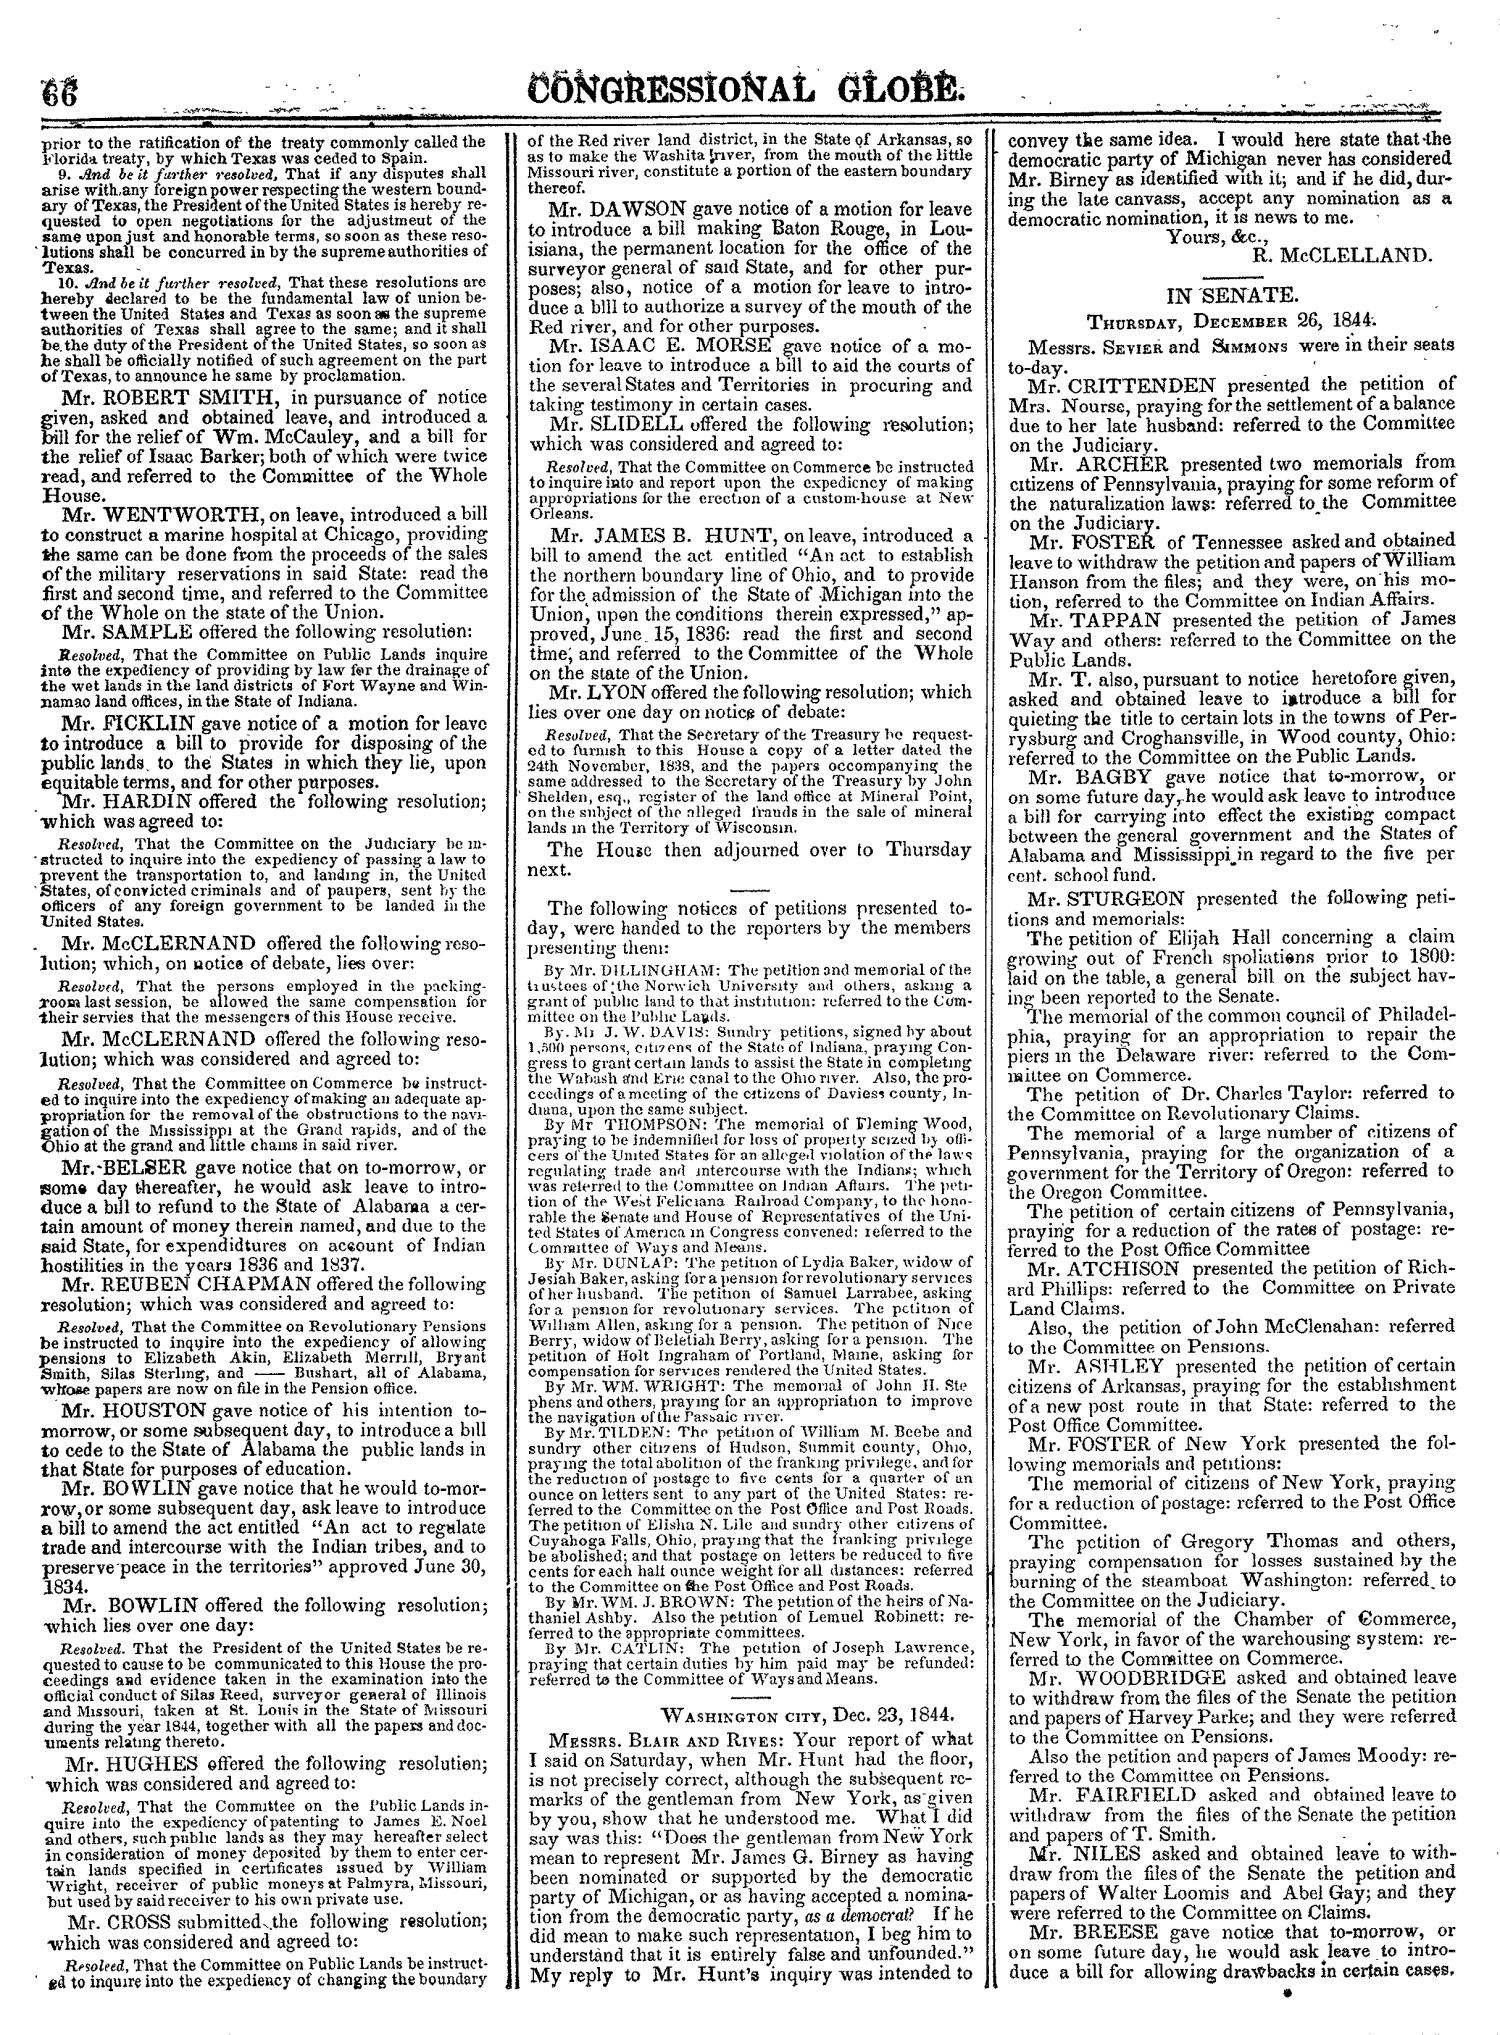 The Congressional Globe, Volume 14: Twenty-Eighth Congress, Second Session                                                                                                      66